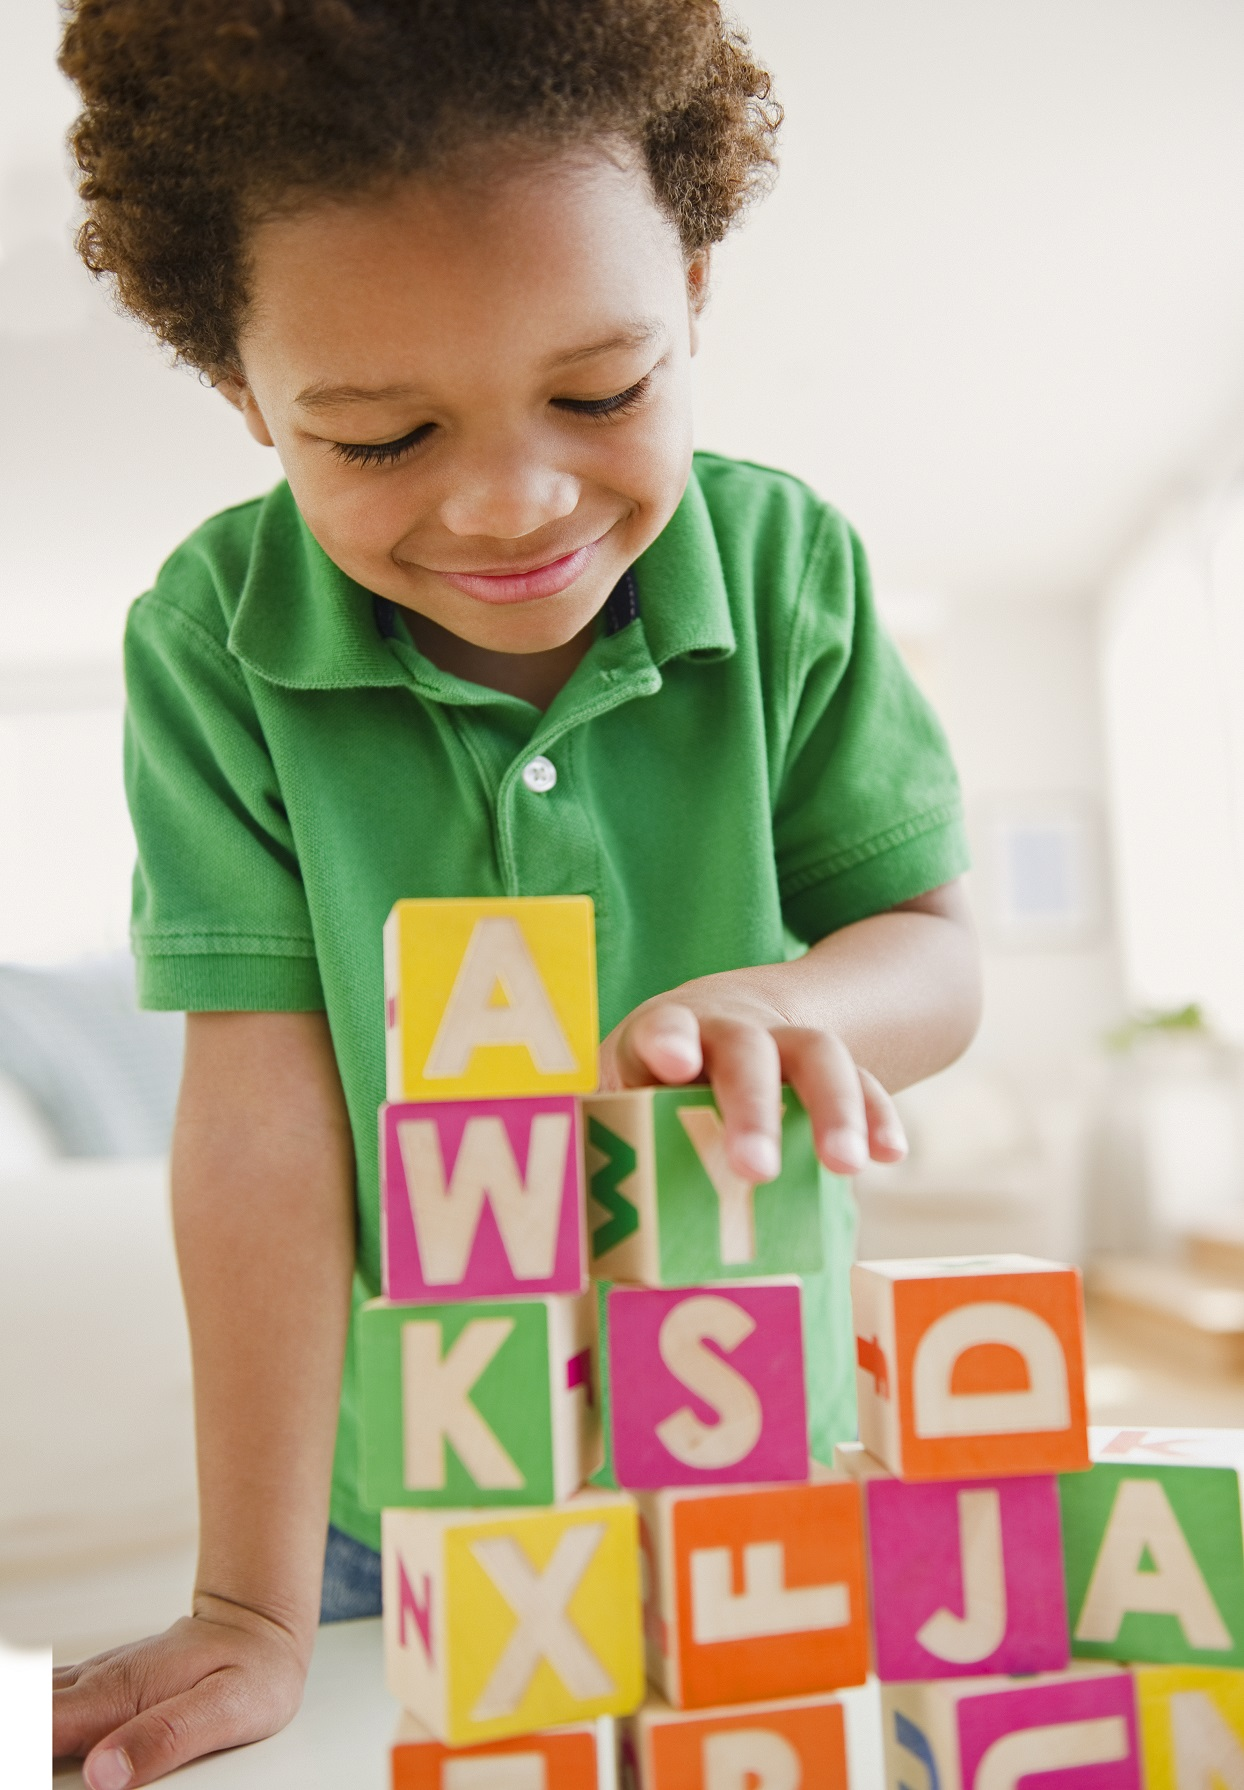 Black Boy Playing With Letter Blocks 102211204